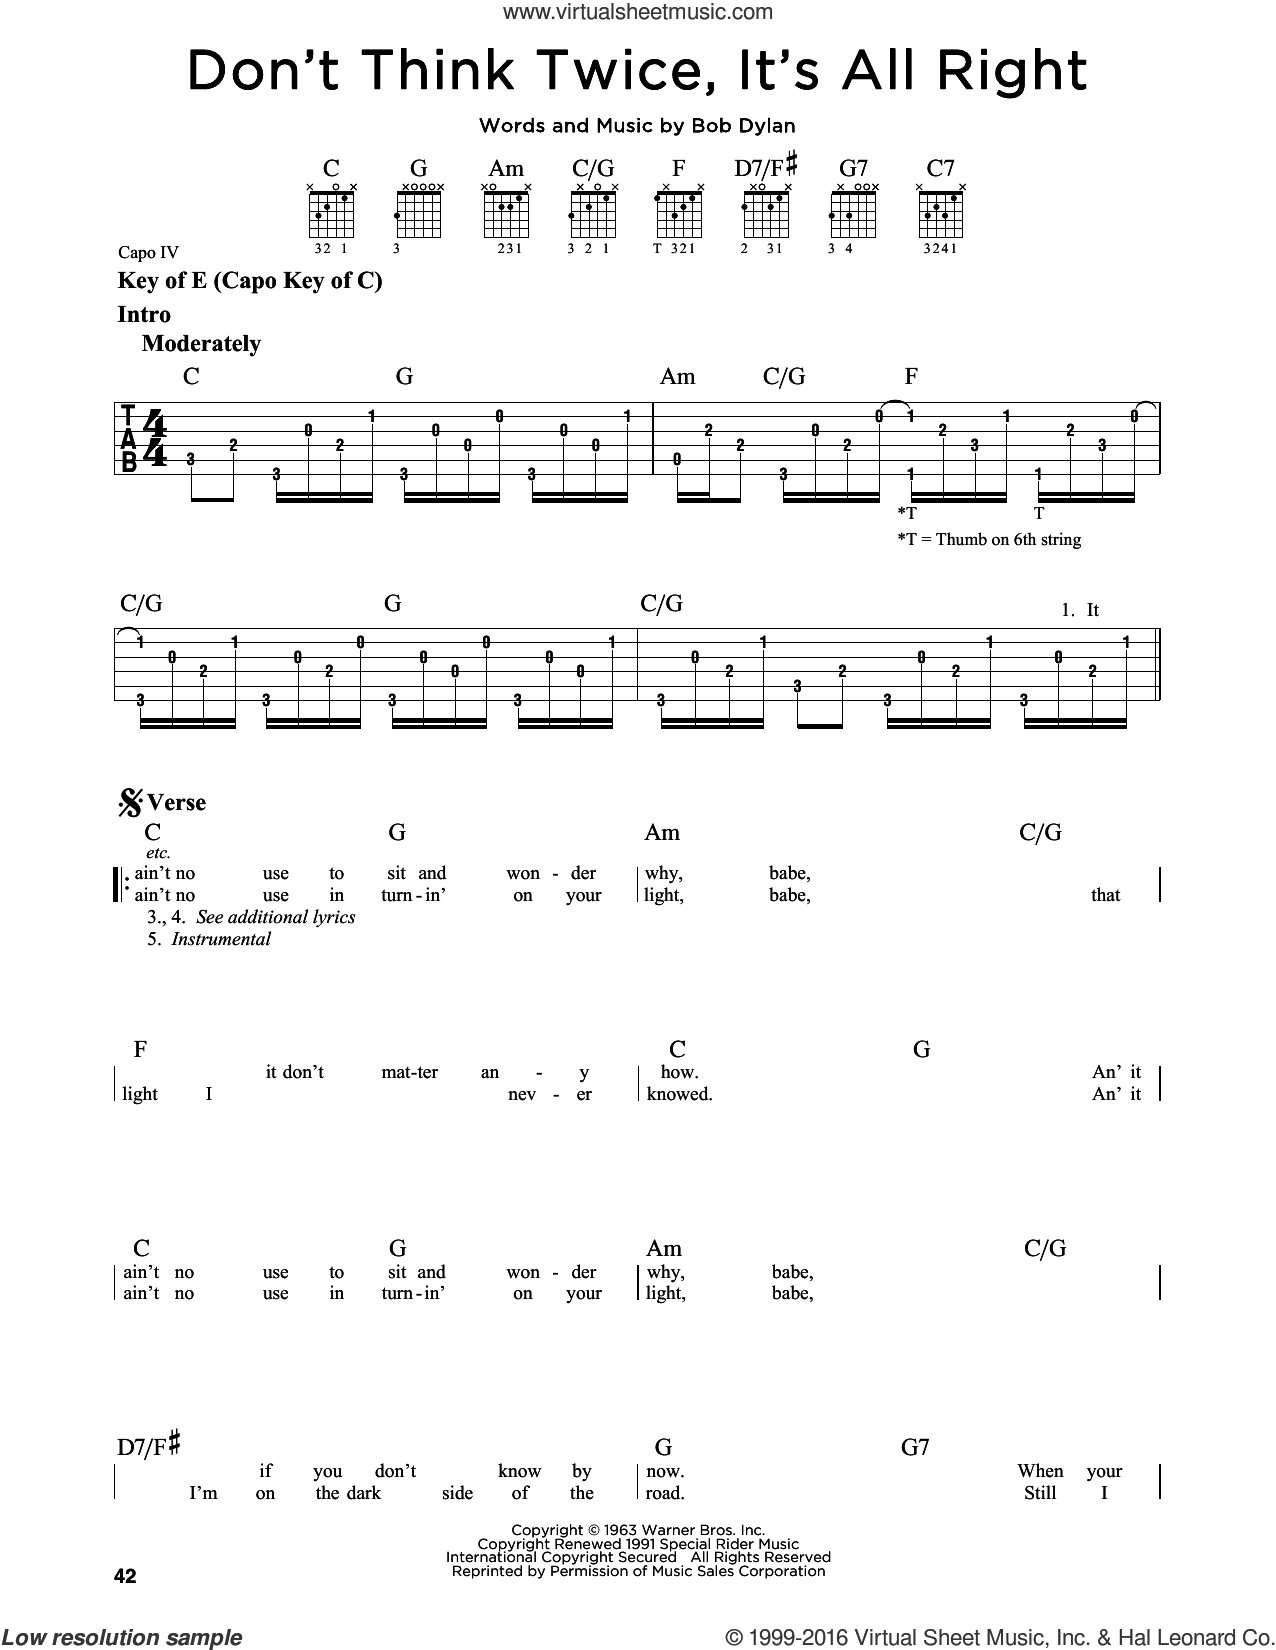 Don't Think Twice, It's All Right sheet music for guitar solo (lead sheet) by Bob Dylan and Peter, Paul & Mary. Score Image Preview.